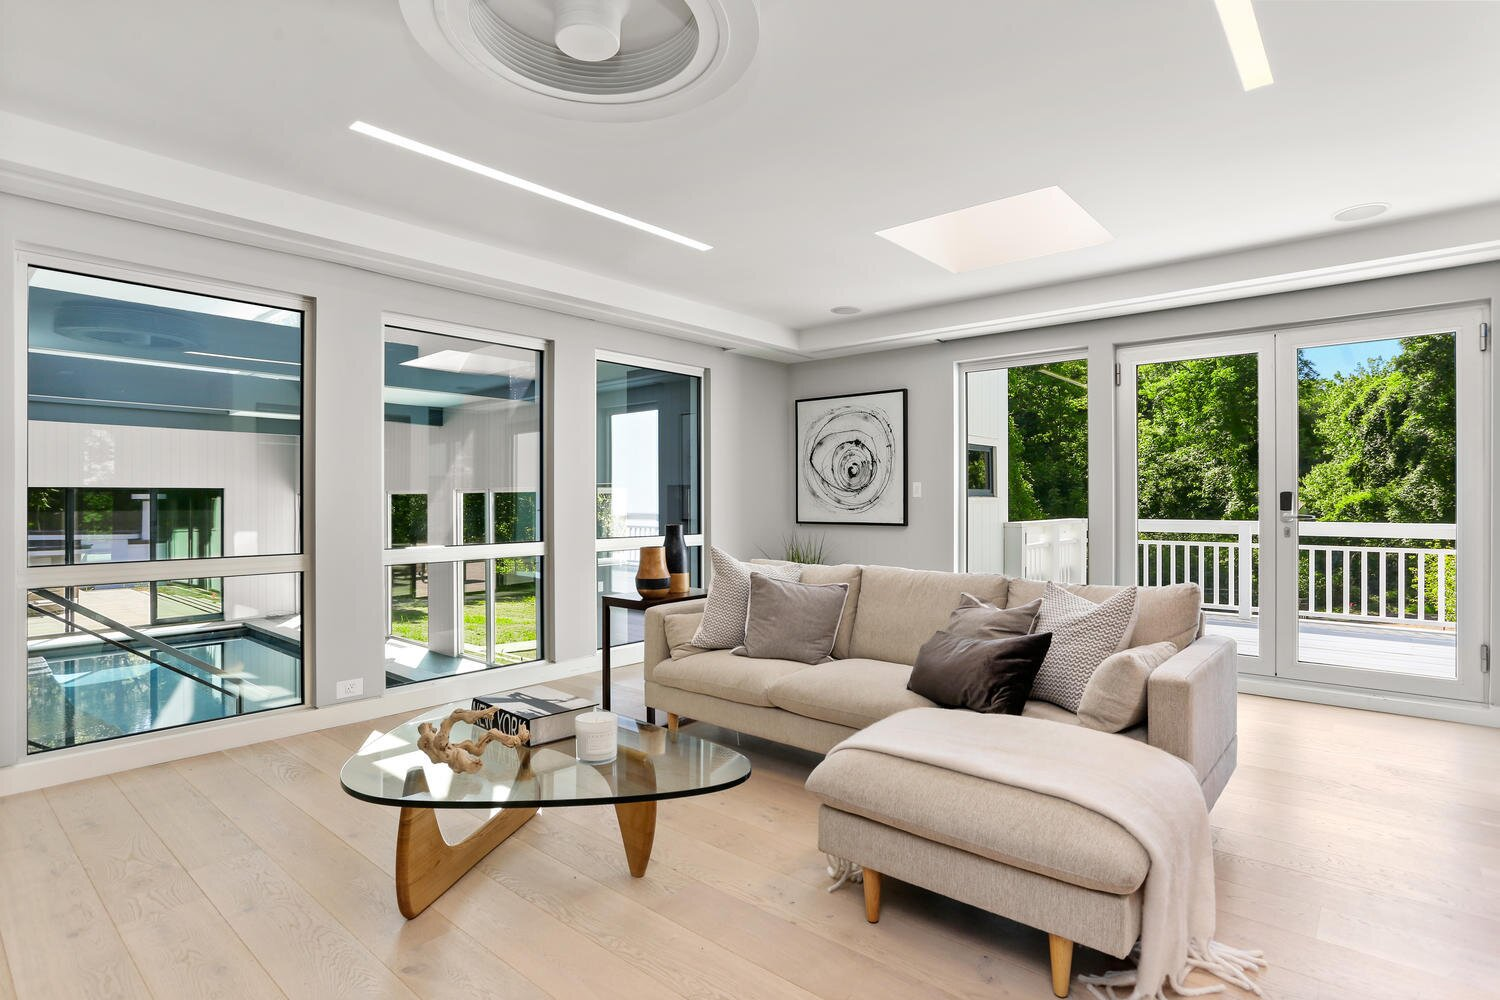 Modern home with Living Room and Ceiling Lighting. Sunroom overlooking Indoor Pool Photo 14 of A Gut Renovated MidCentury Modern Green Energy Home for Luxury Winter Living for $4.65m